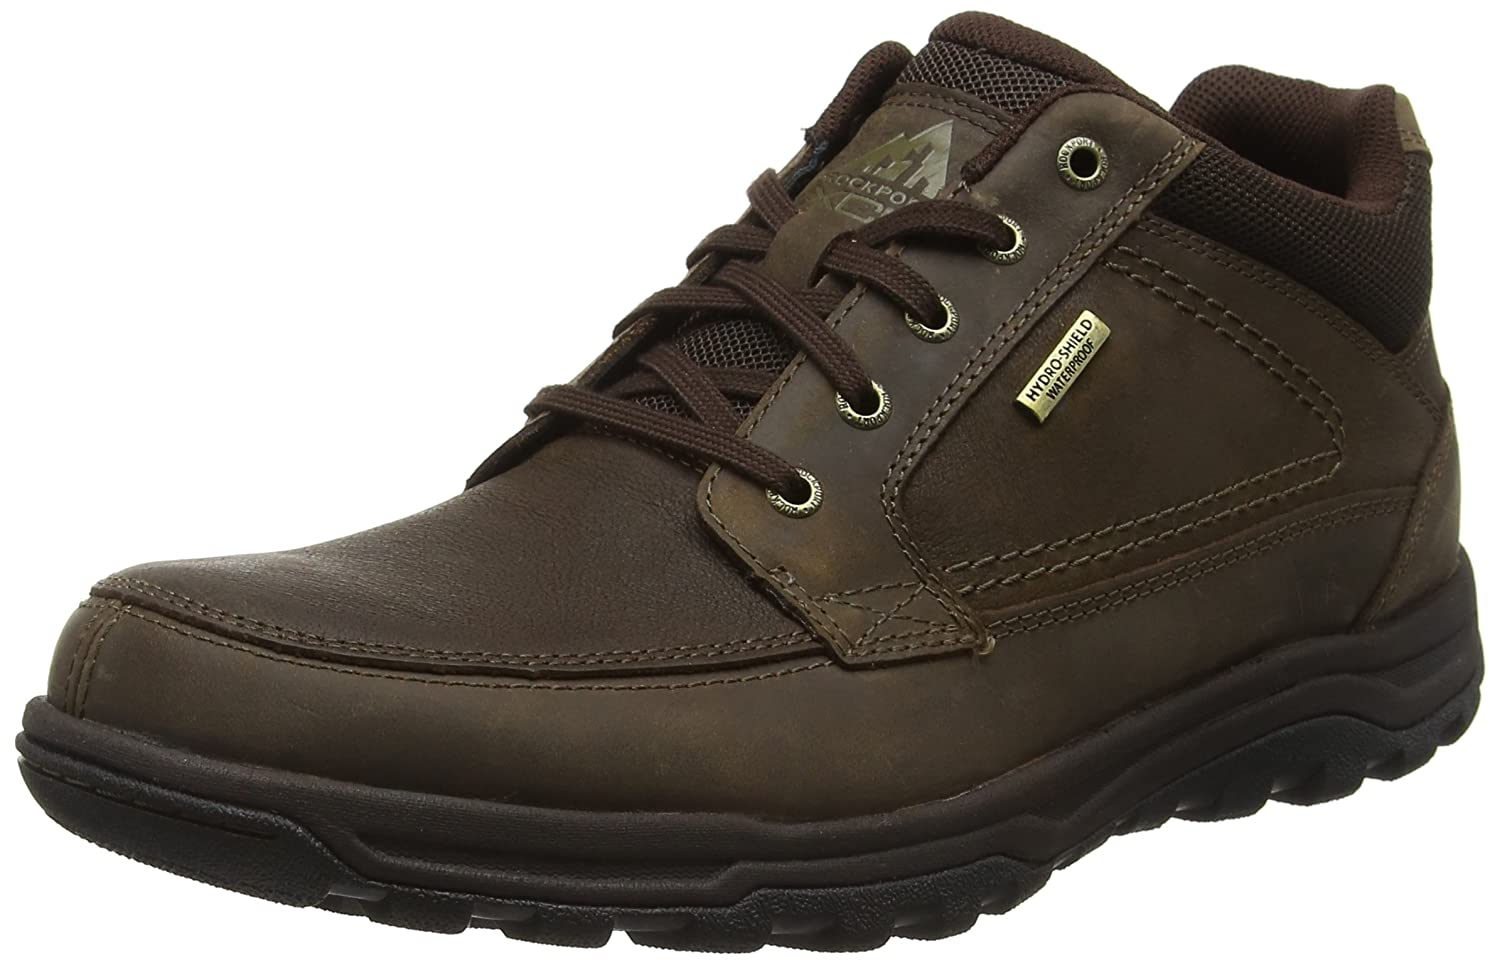 TALLA 45 EU. Rockport Trail Technique Waterproof Chukka, Botines para Hombre